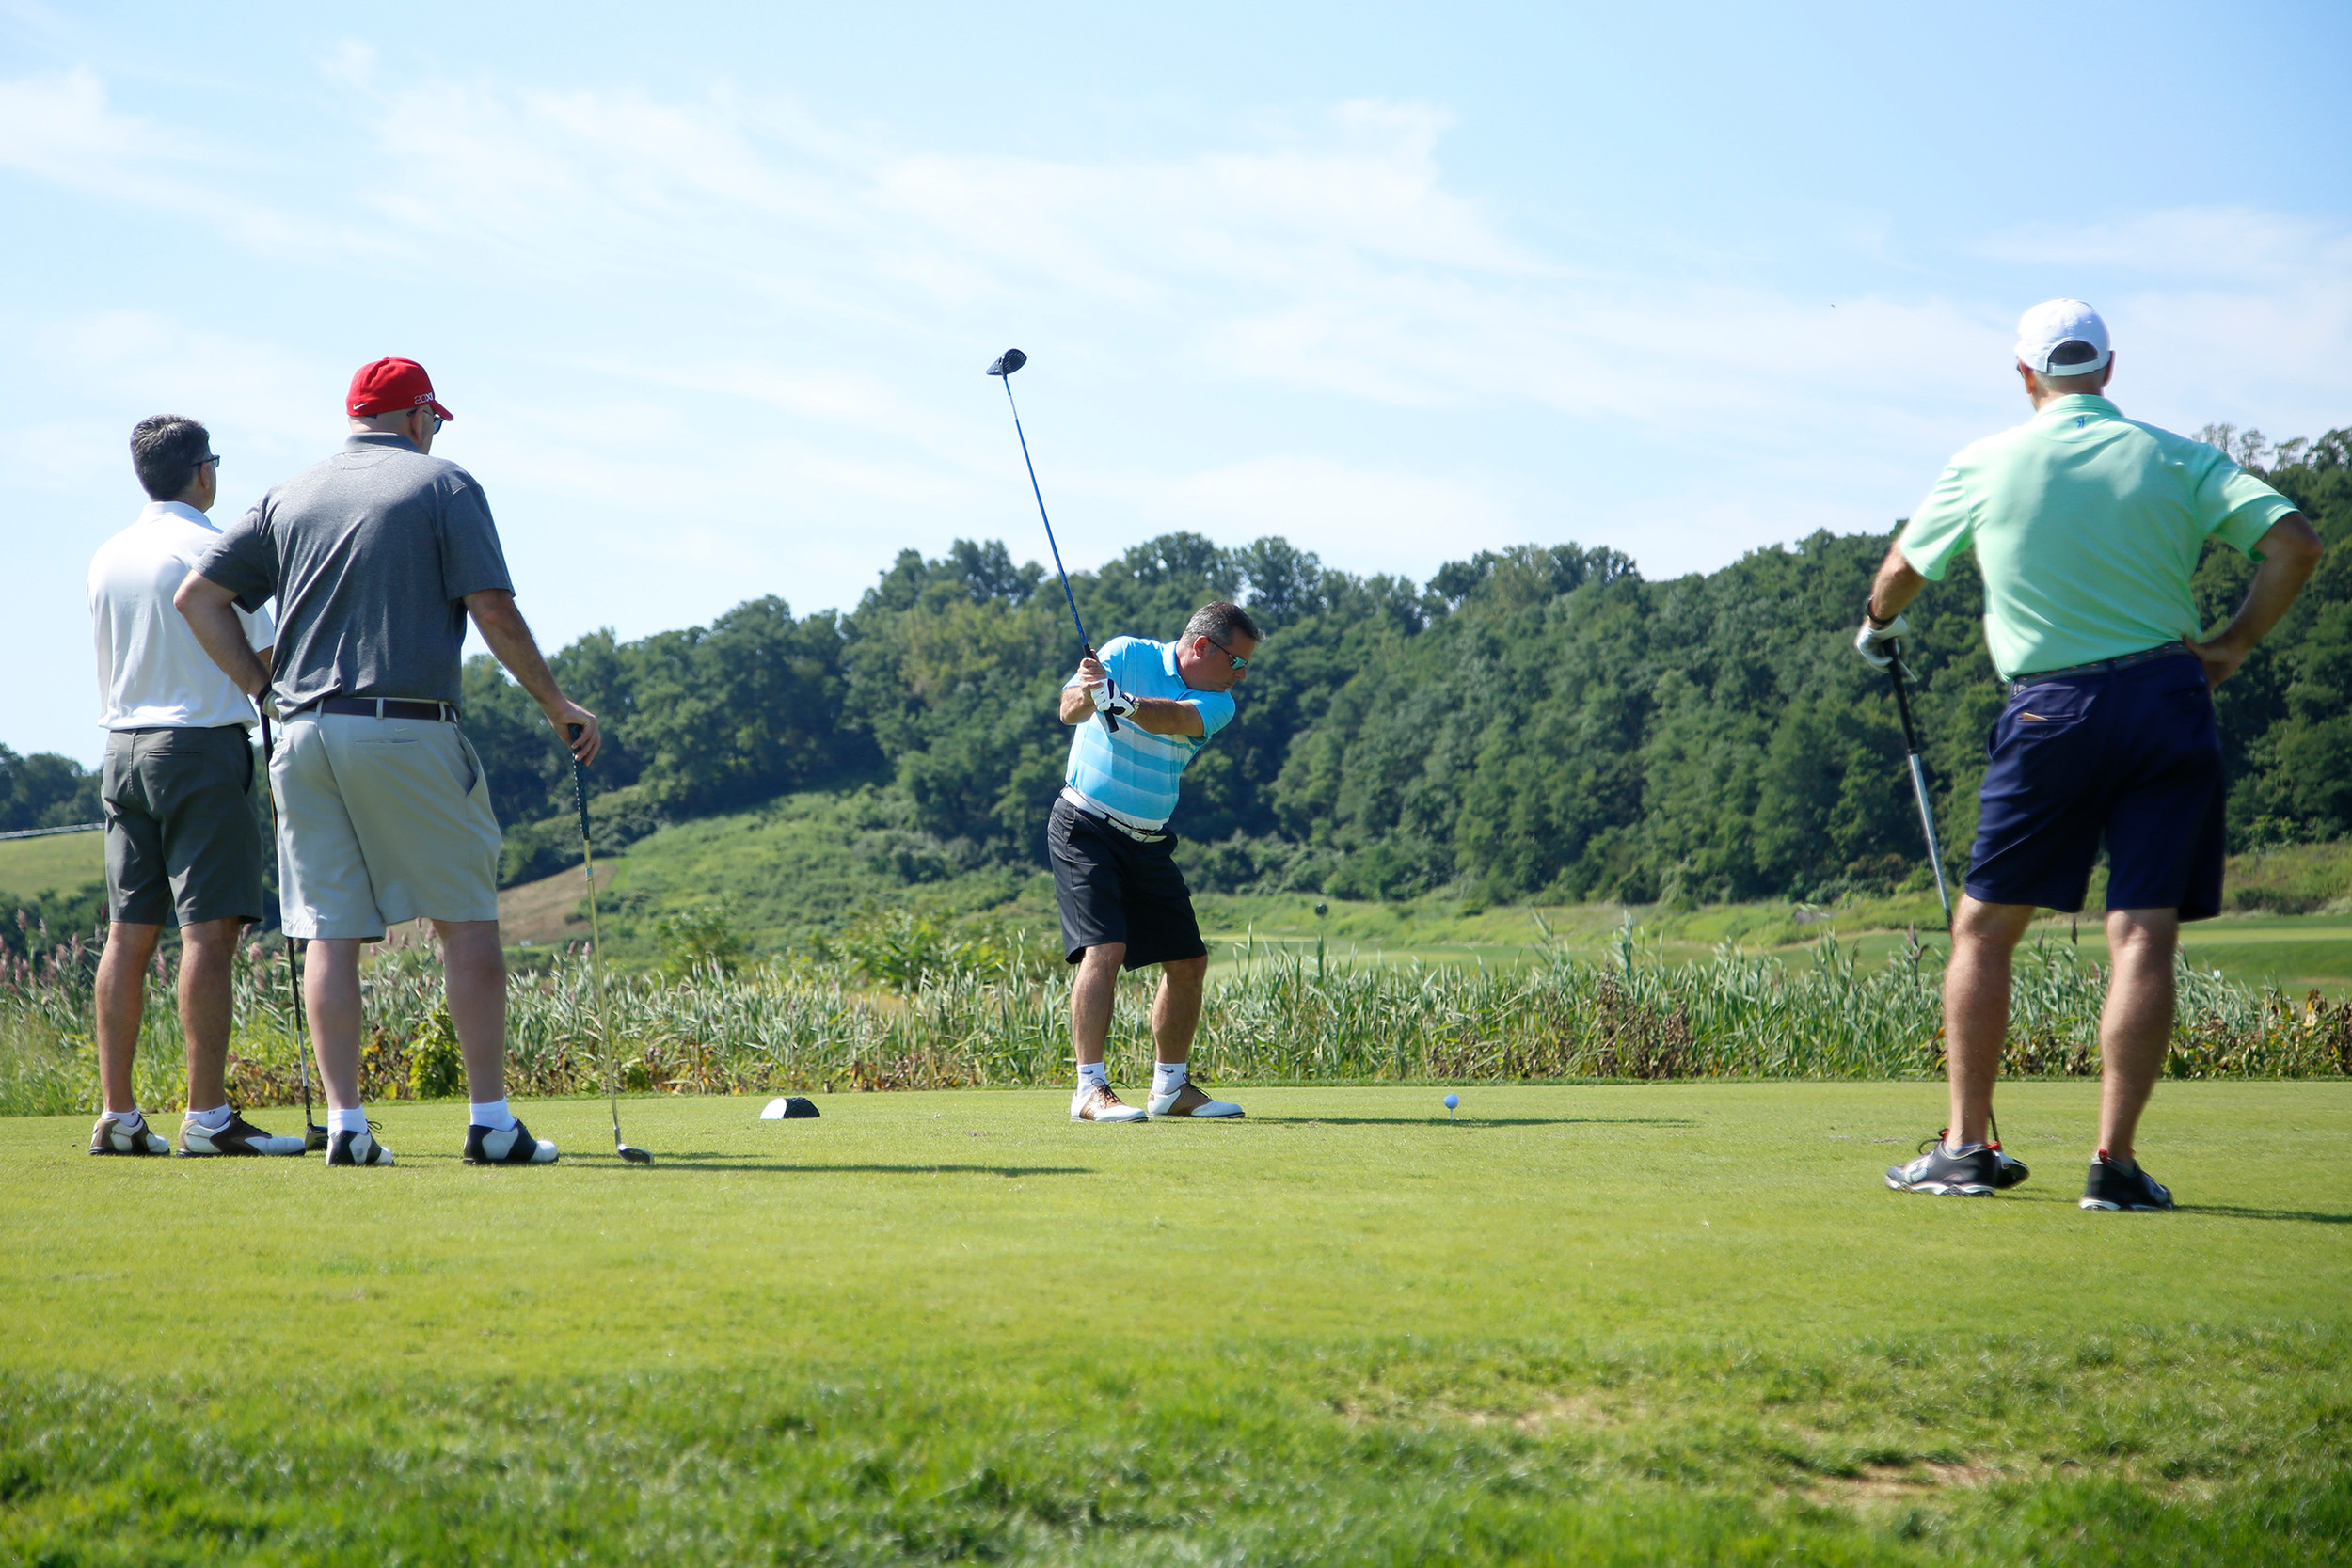 Honoree John Hrvatin, center, takes his stroke as the rest of his friends, Ed Hrvatin, left, Mike Cammarota and Dave Mullane, right, watched. (Right)